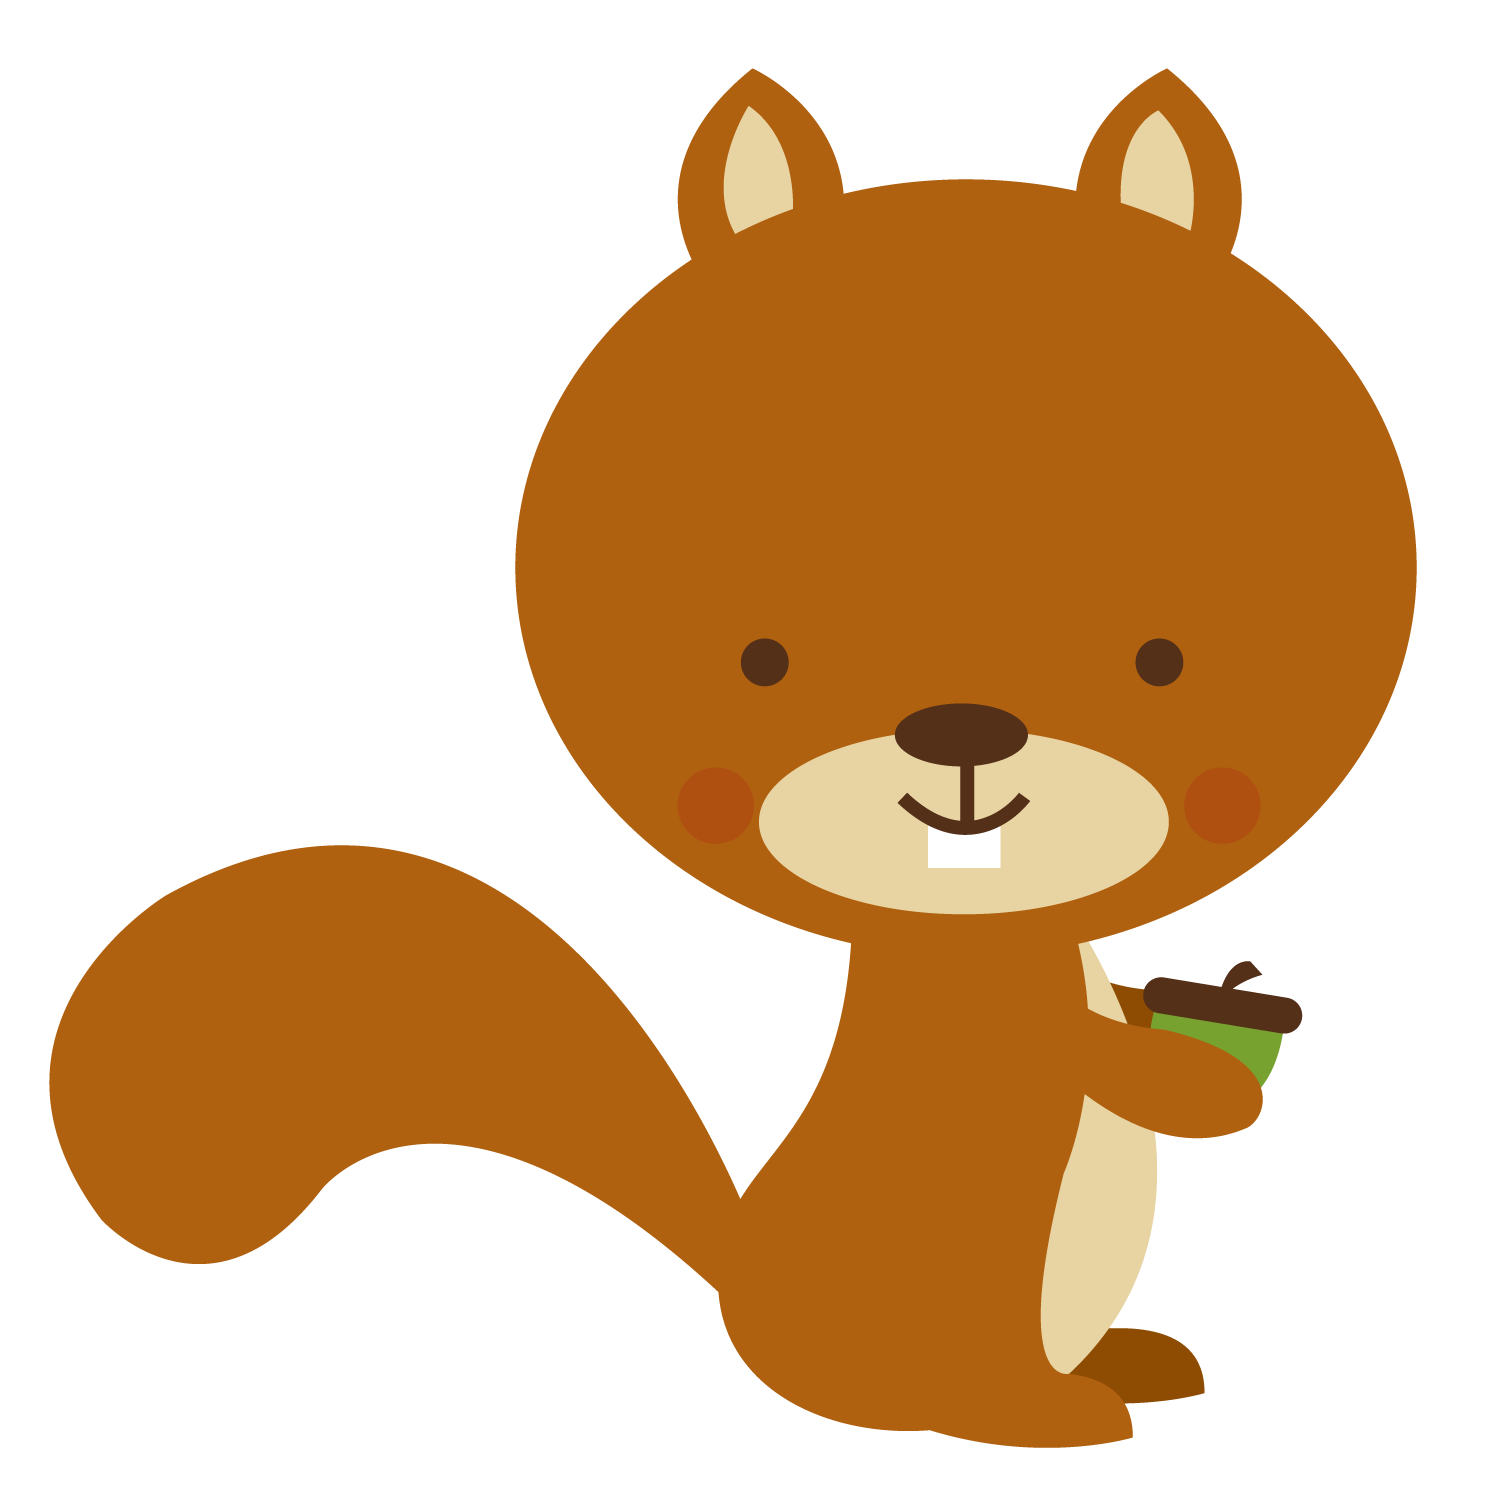 Squirrel house clipart jpg freeuse stock Floresta e Safari 3 - squirrel.png - Minus | clipart | Pinterest ... jpg freeuse stock